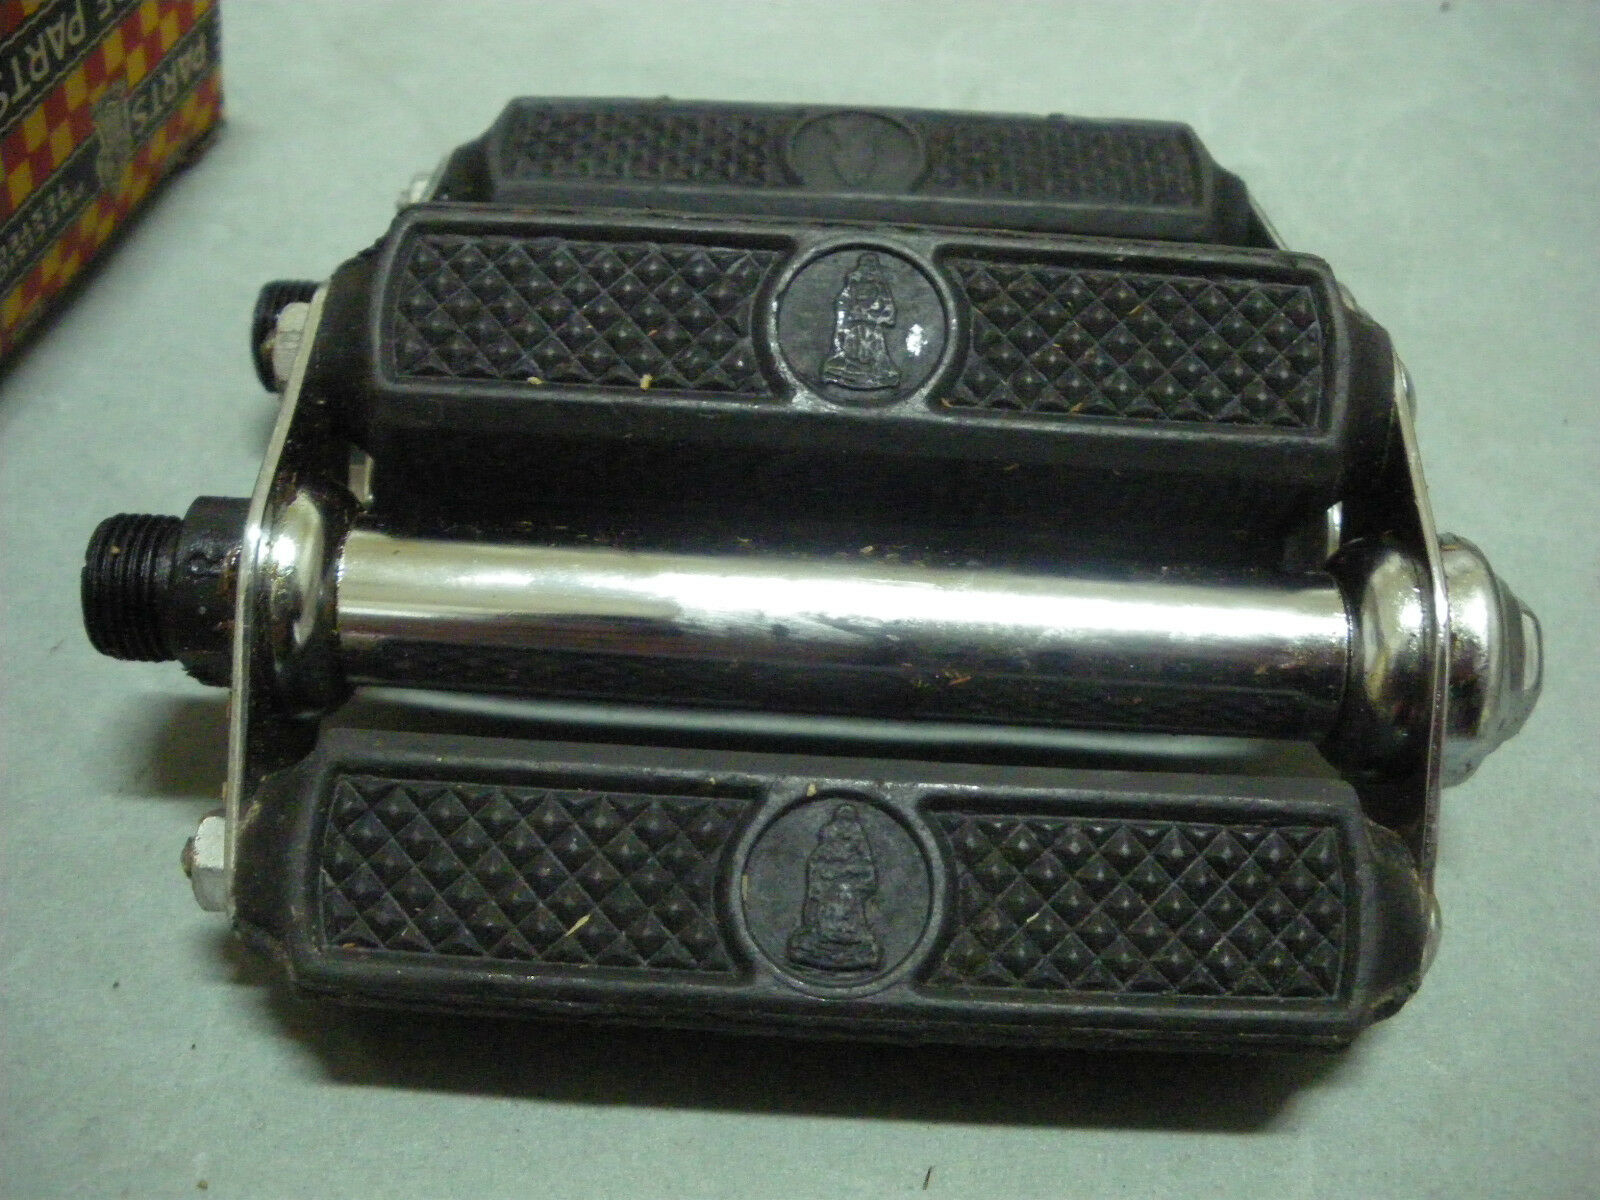 Vintage Raleigh Bike Bicycle  Pedals with logo  4  - 9 16  Axle NOS 1950s  online discount